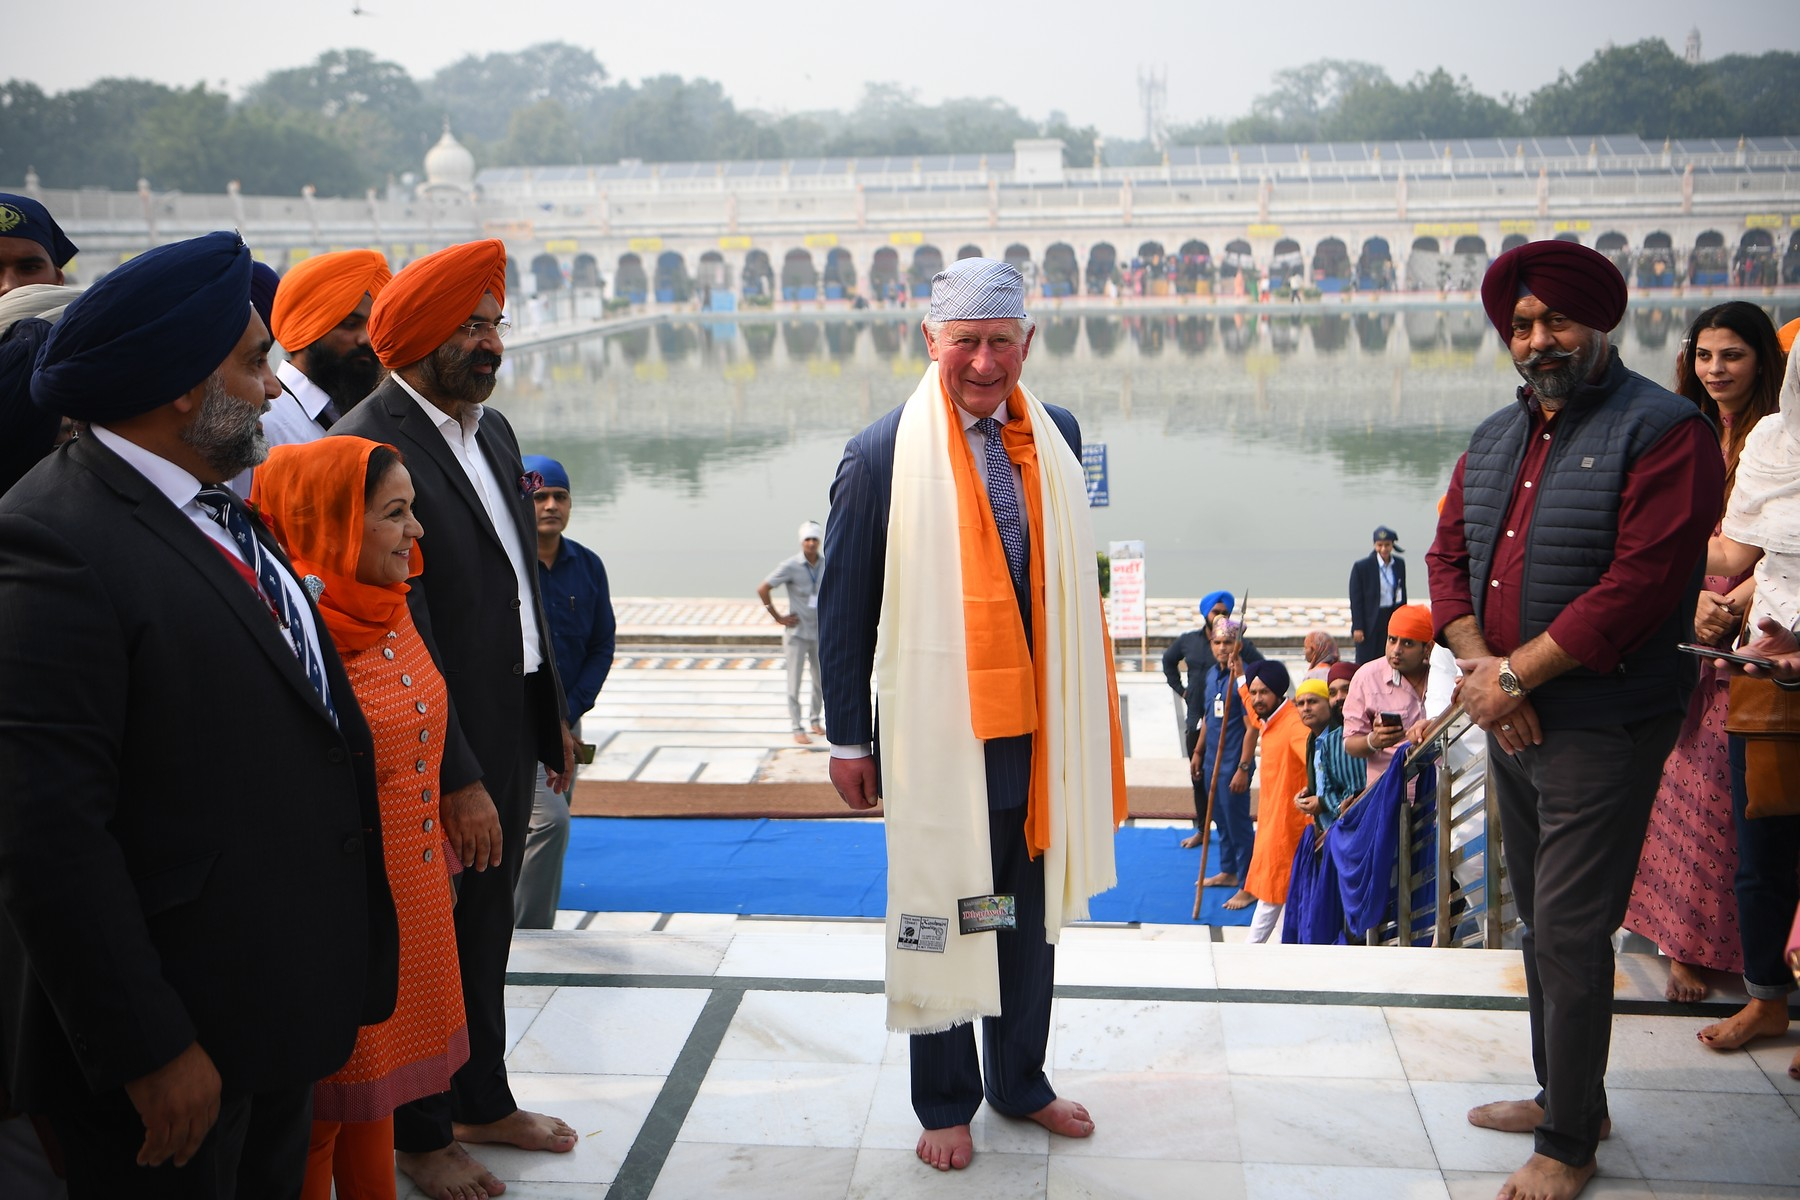 The Prince of Wales barefooted during his visit to the Bangla Sahib Gurdwara Sikh Temple, New Delhi, to celebrate the 550th anniversary of the birth of Guru Nanak, the founder of Sikhism, on day one of the royal visit to India., Image: 482614144, License: Rights-managed, Restrictions: , Model Release: no, Credit line: Victoria Jones / PA Images / Profimedia